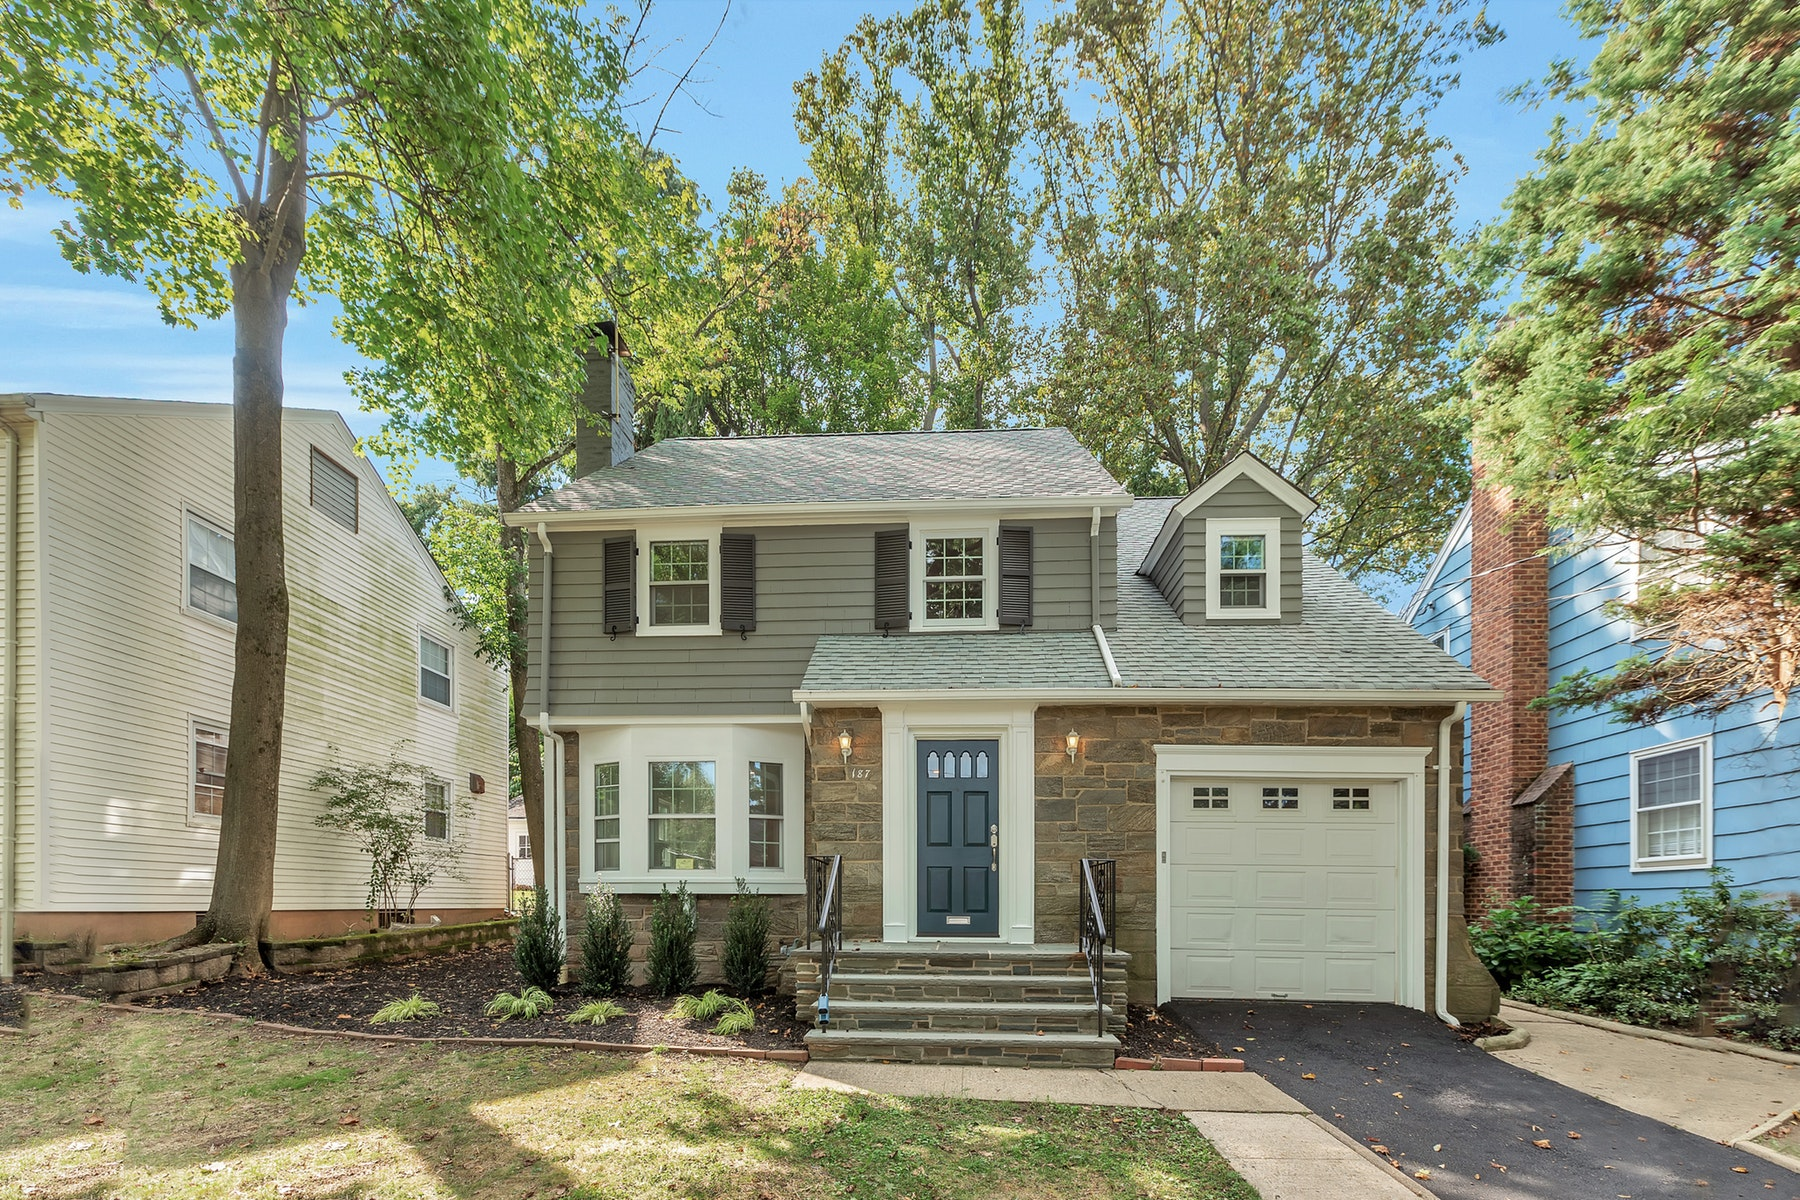 Single Family Homes for Sale at Fully Renovated Colonial 187 Gregory Avenue West Orange, New Jersey 07052 United States